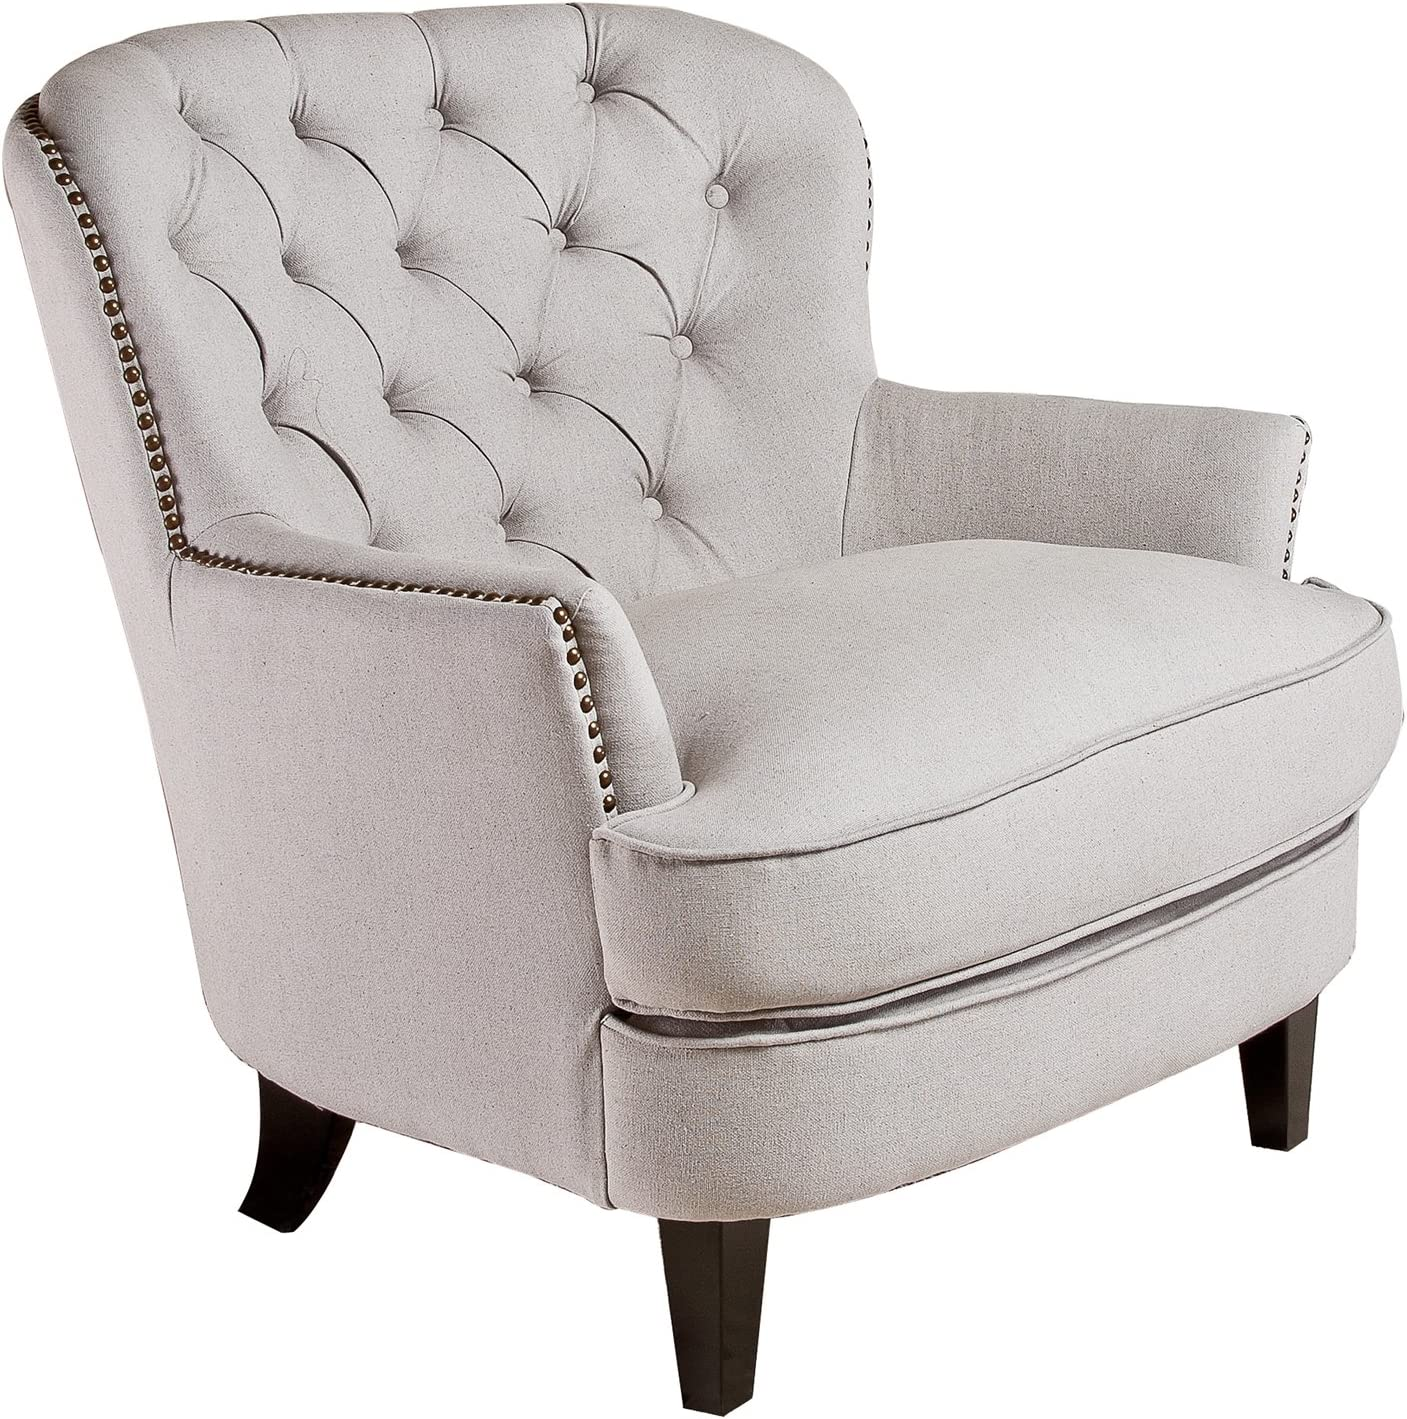 Christopher Knight Home Tafton Tufted Fabric Club Chair, Natural